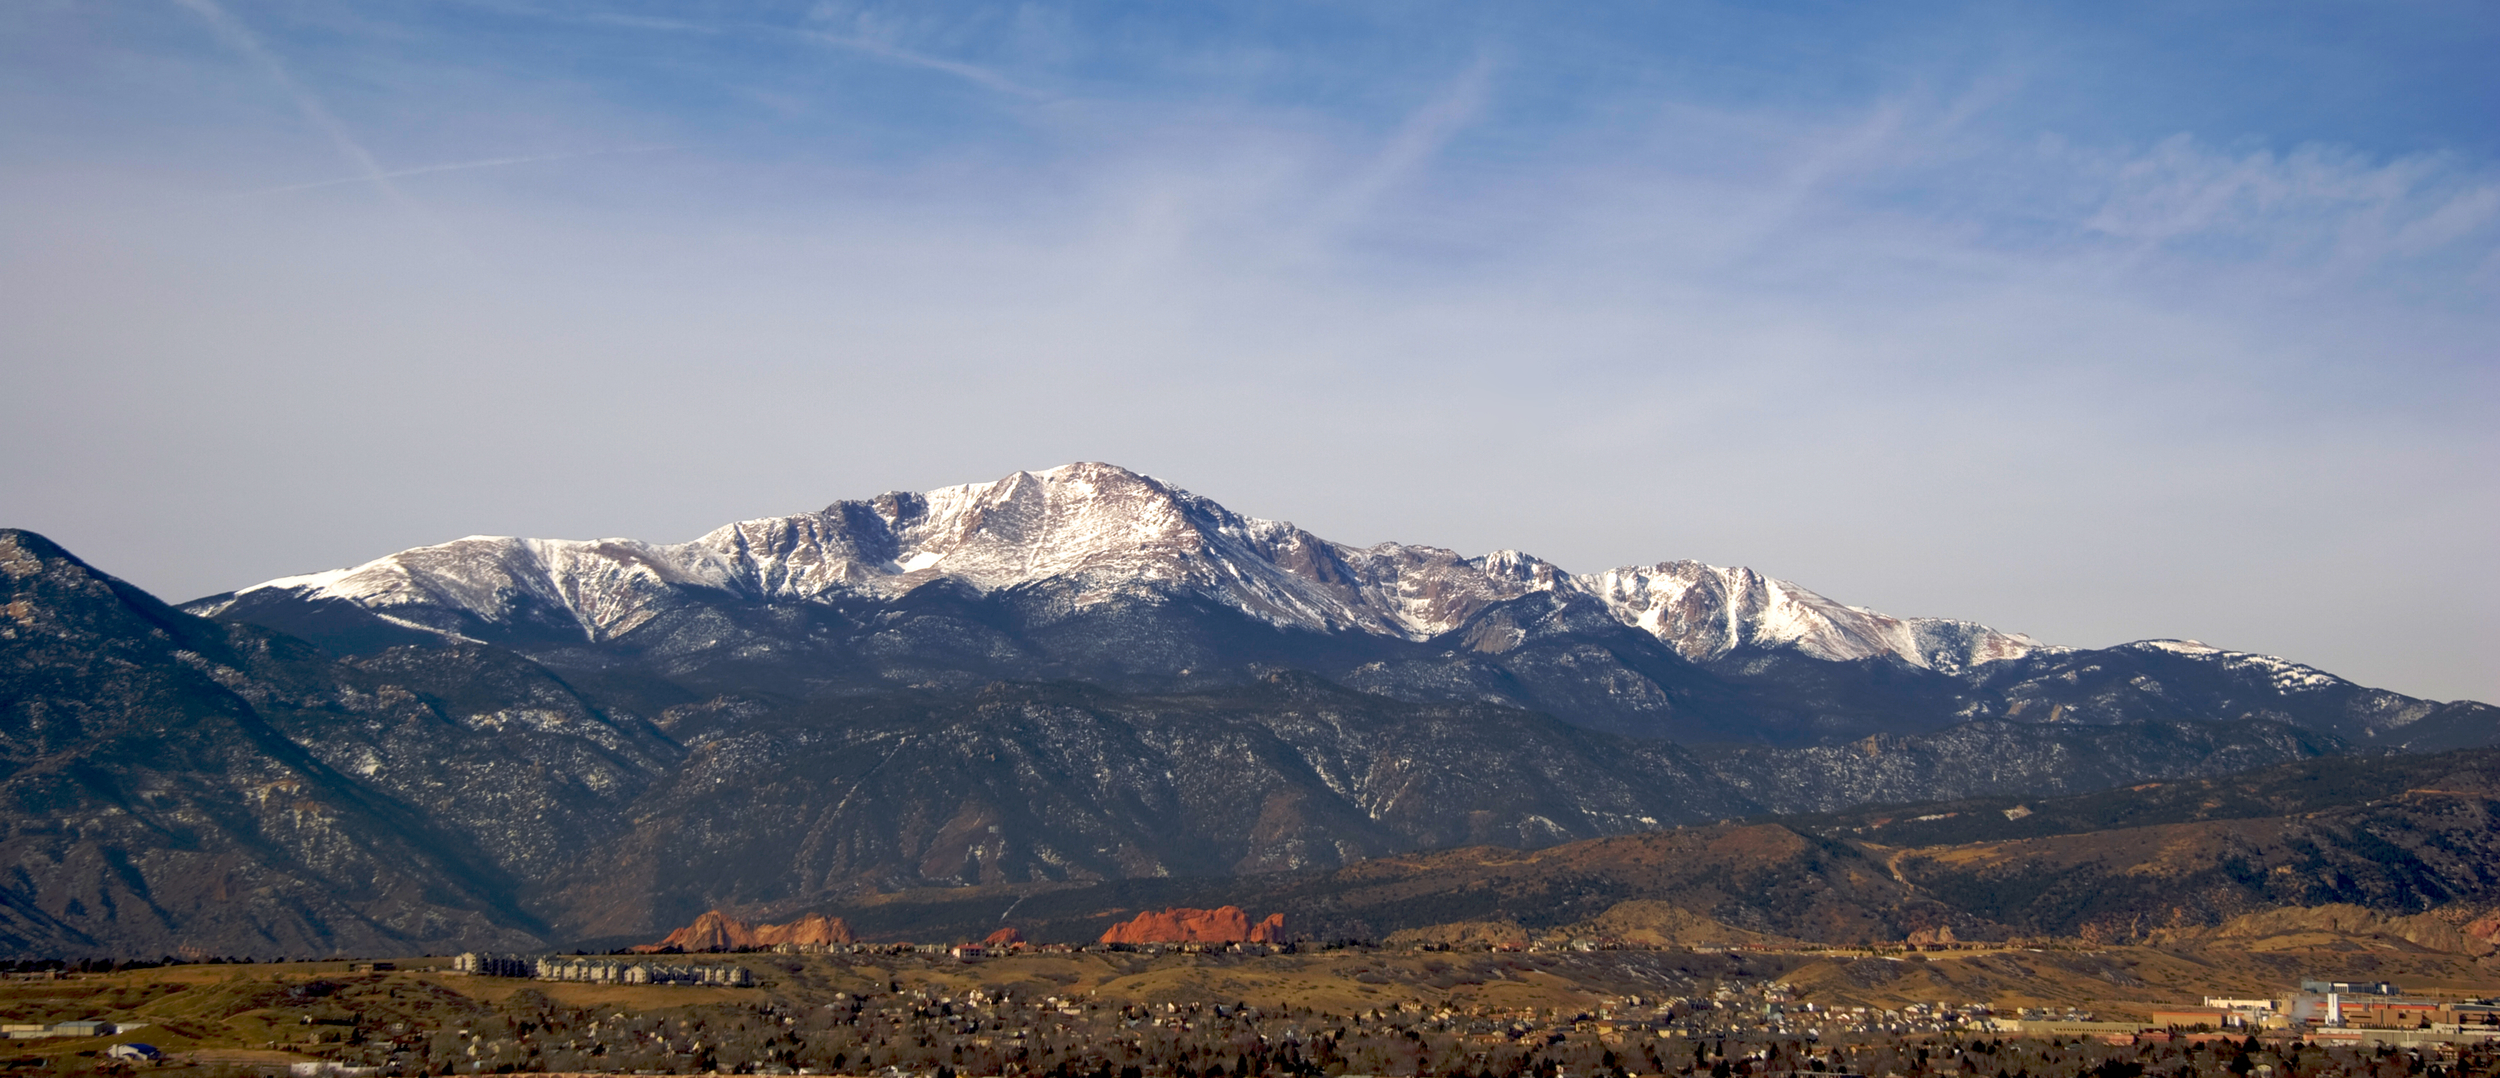 Pikes Peak, CO - View from Main Office